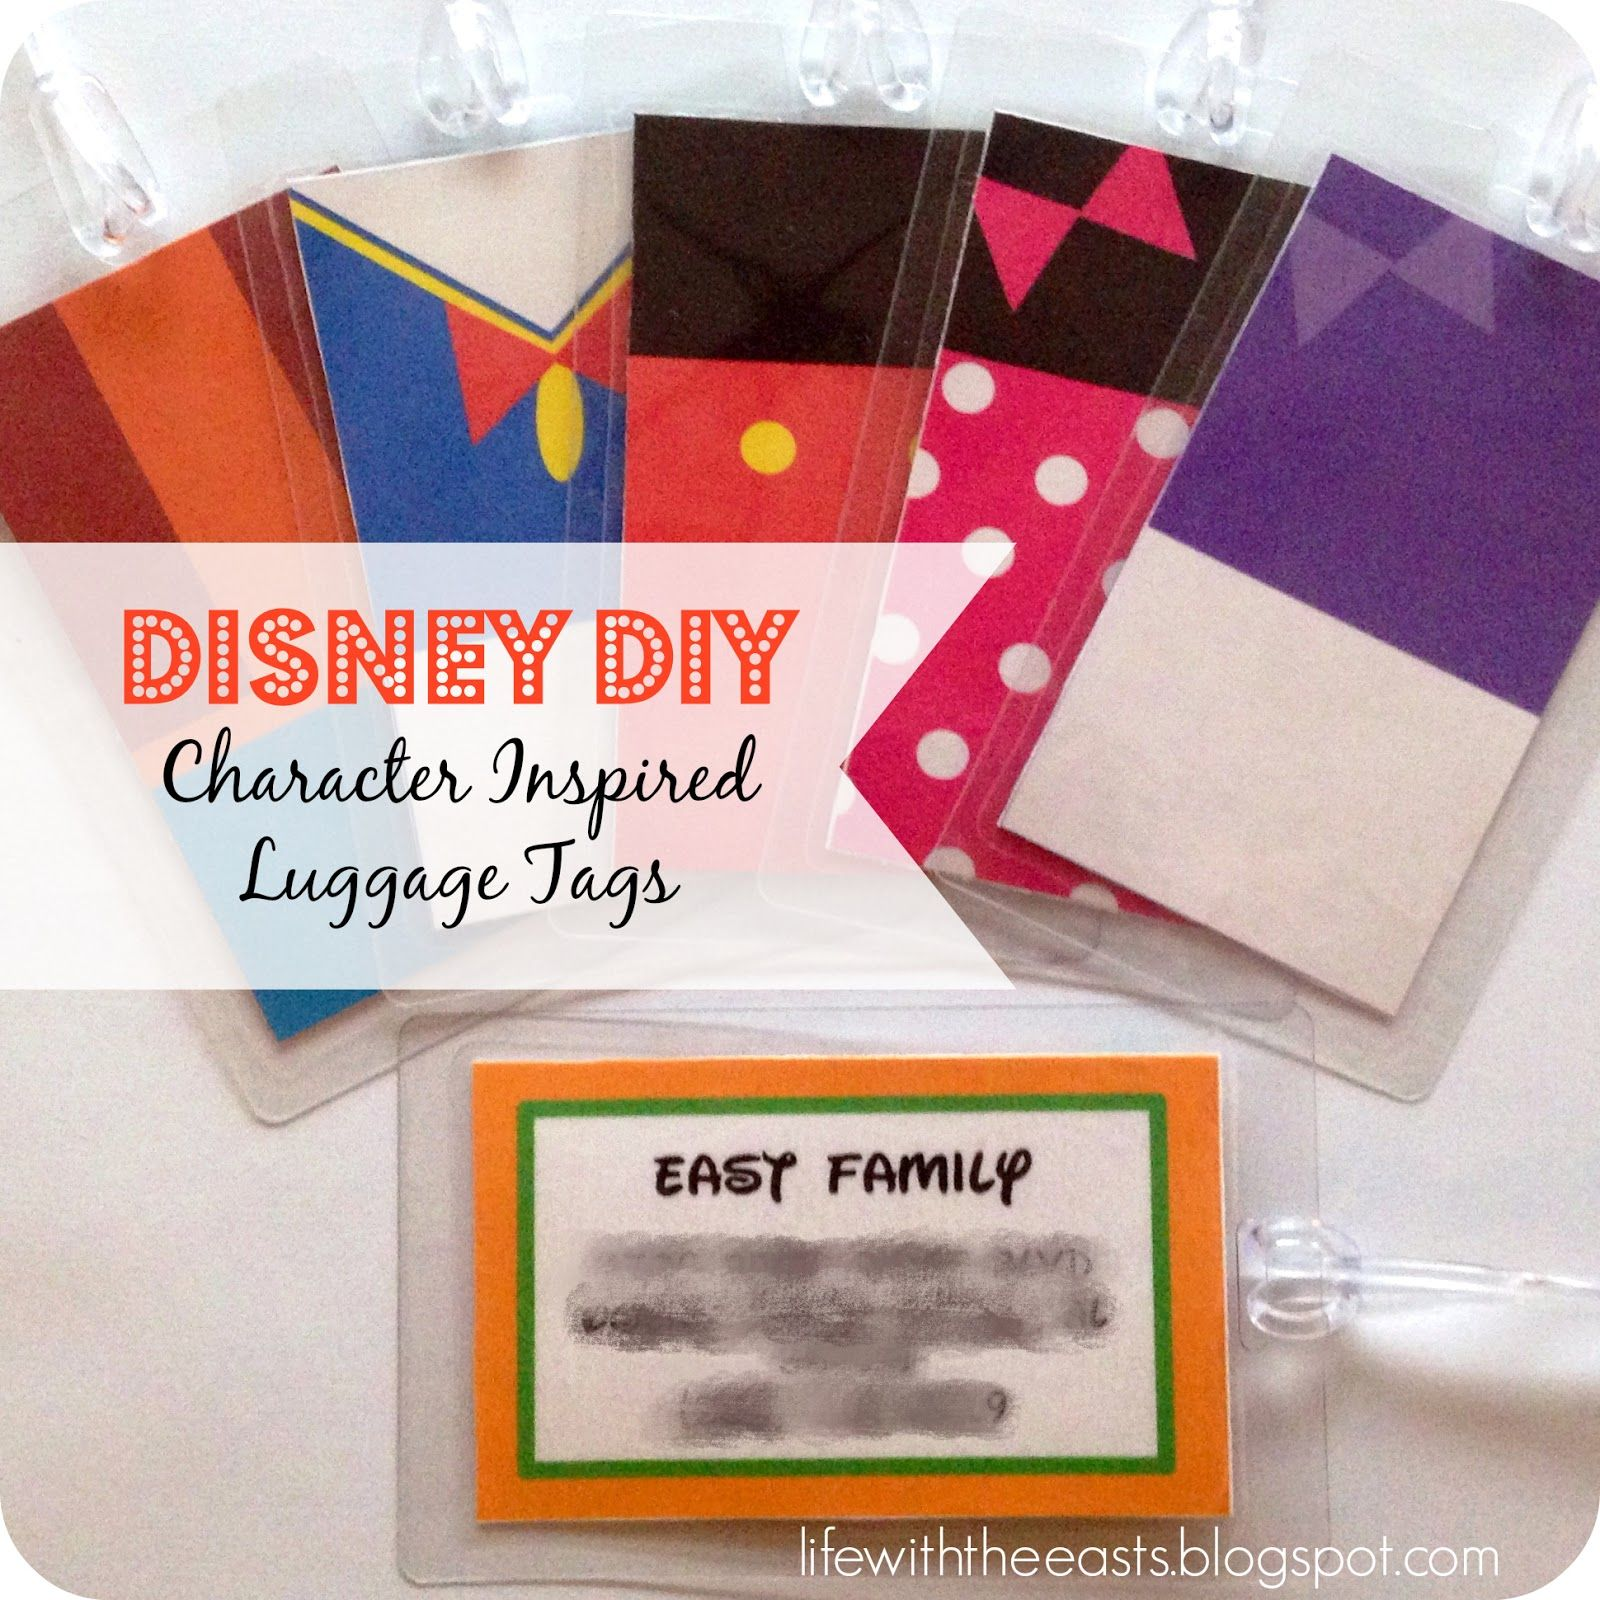 Kelly East Diy Disney Luggage Tags Crafts Pinterest Disney